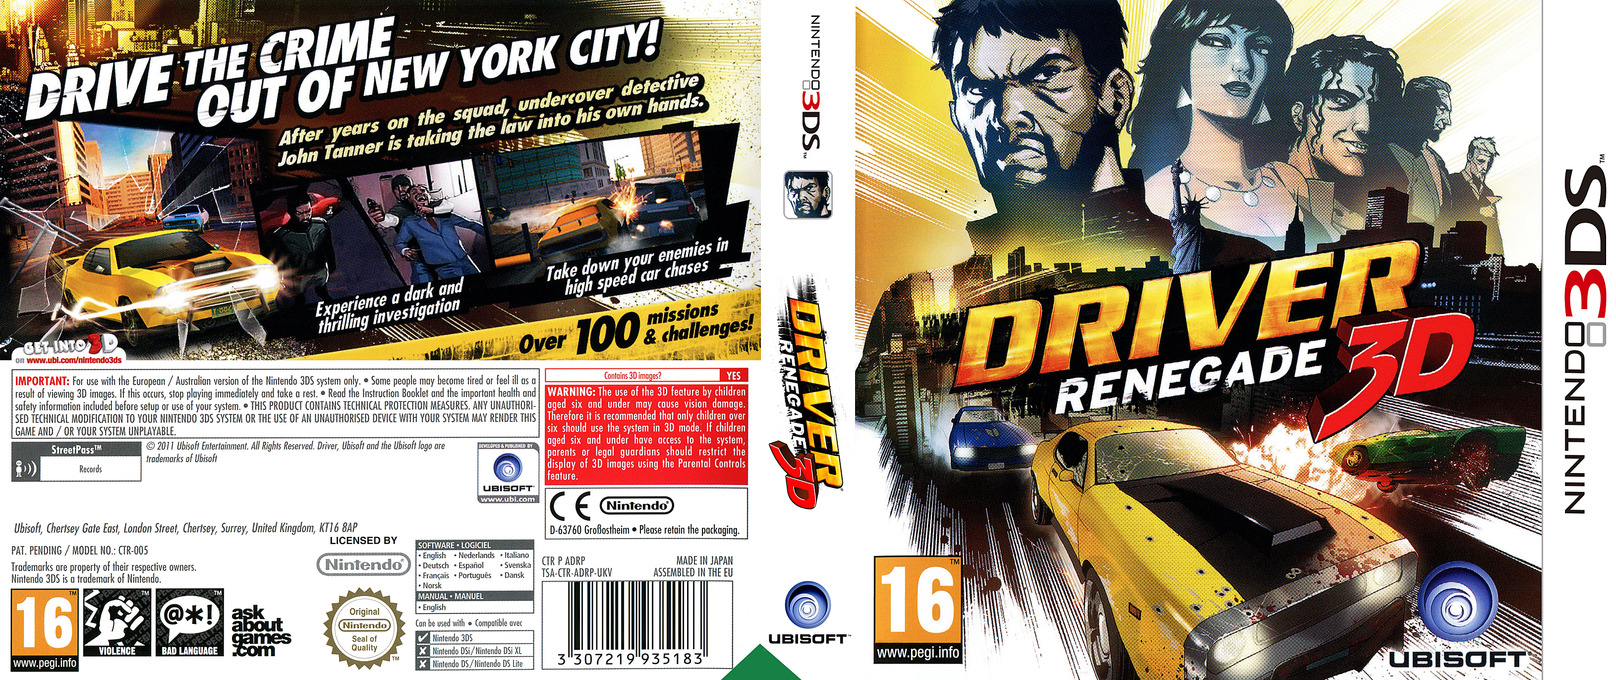 Driver Renegade 3D 3DS coverfullHQ (ADRP)